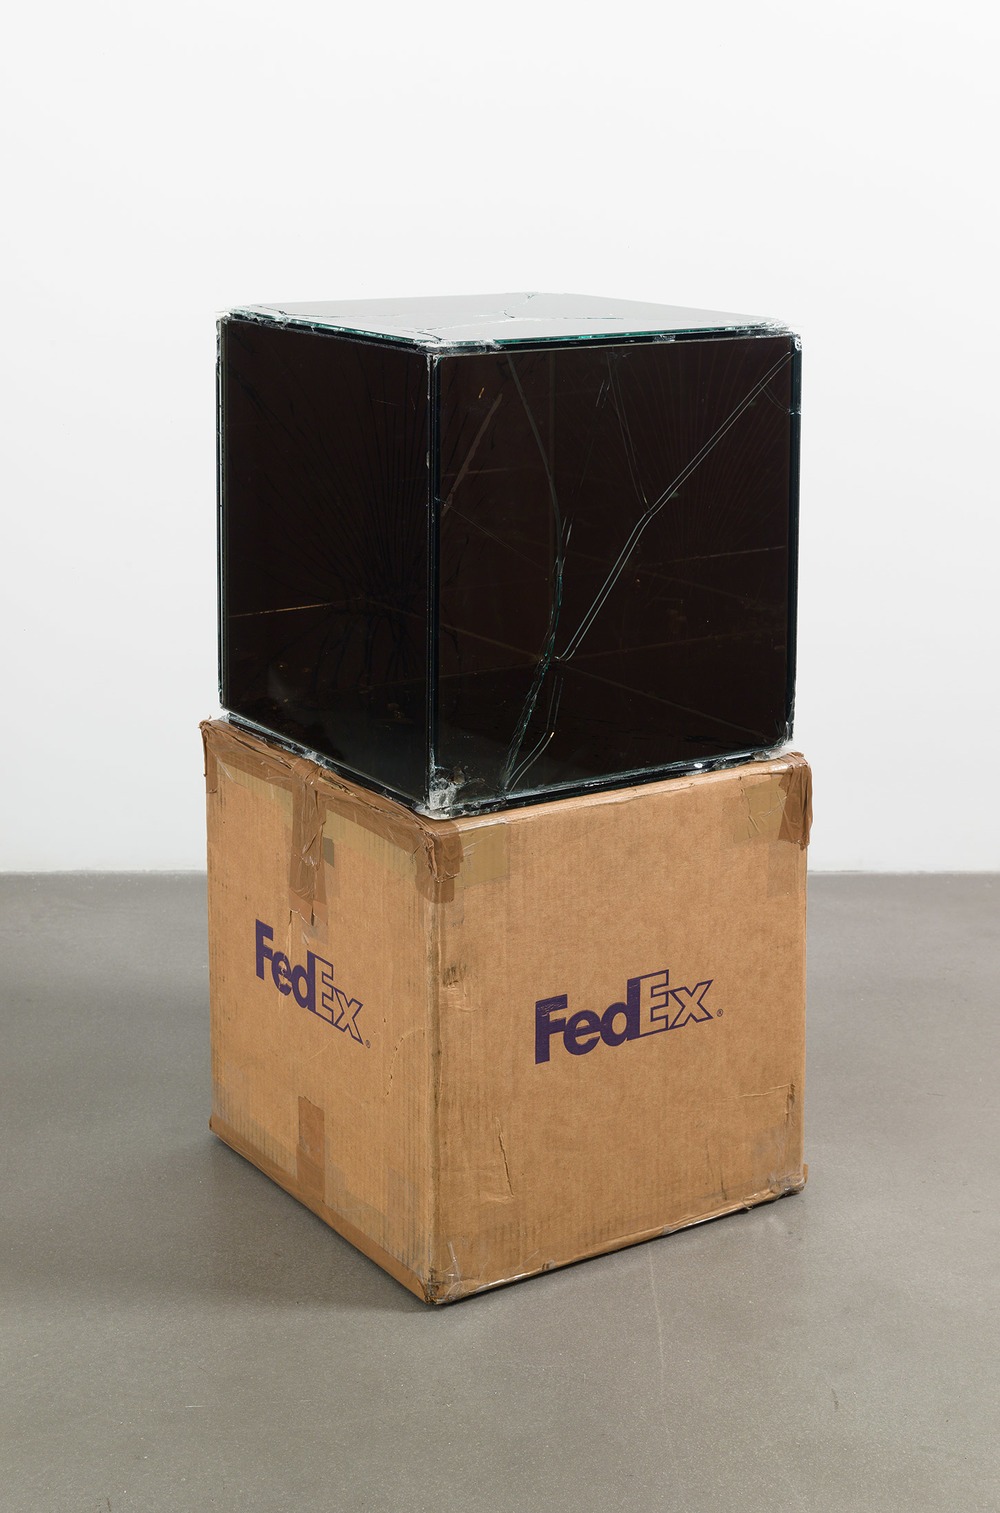 FedEx® Kraft Box  © 2005 FEDEX 330504 10/05 SSCC, Priority Overnight, Los Angeles–Miami trk#865344981303, October 29–30, 2008, Priority Overnight, Miami–Ann Arbor trk#861049125148, March 3–4, 2009, Standard Overnight, Ann Arbor–Los Angeles trk#868274625716, July 9–10, 2009, Standard Overnight, Los Angeles–New York trk# 774901718297, November 4–5, 2015, Standard Overnight, New York–Los Angeles trk#775241156204, December 21–22, 2015    2008–   Laminated Mirropane, FedEx shipping box, accrued FedEx shipping and tracking labels, silicone, metal, tape  16 x 16 x 16 inches   Pulleys, Cogwheels, Mirrors, and Windows, 2009    Great Hall Exhibition, 2015